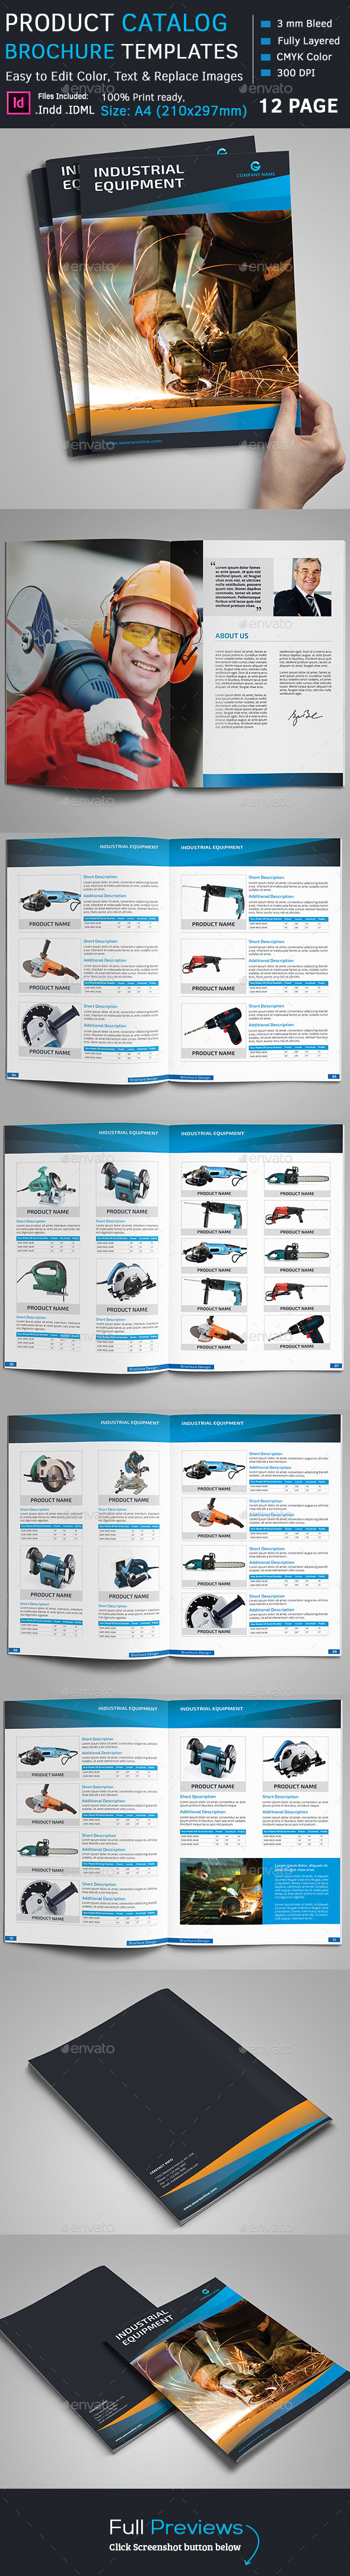 GraphicRiver Product Catalog 10815242